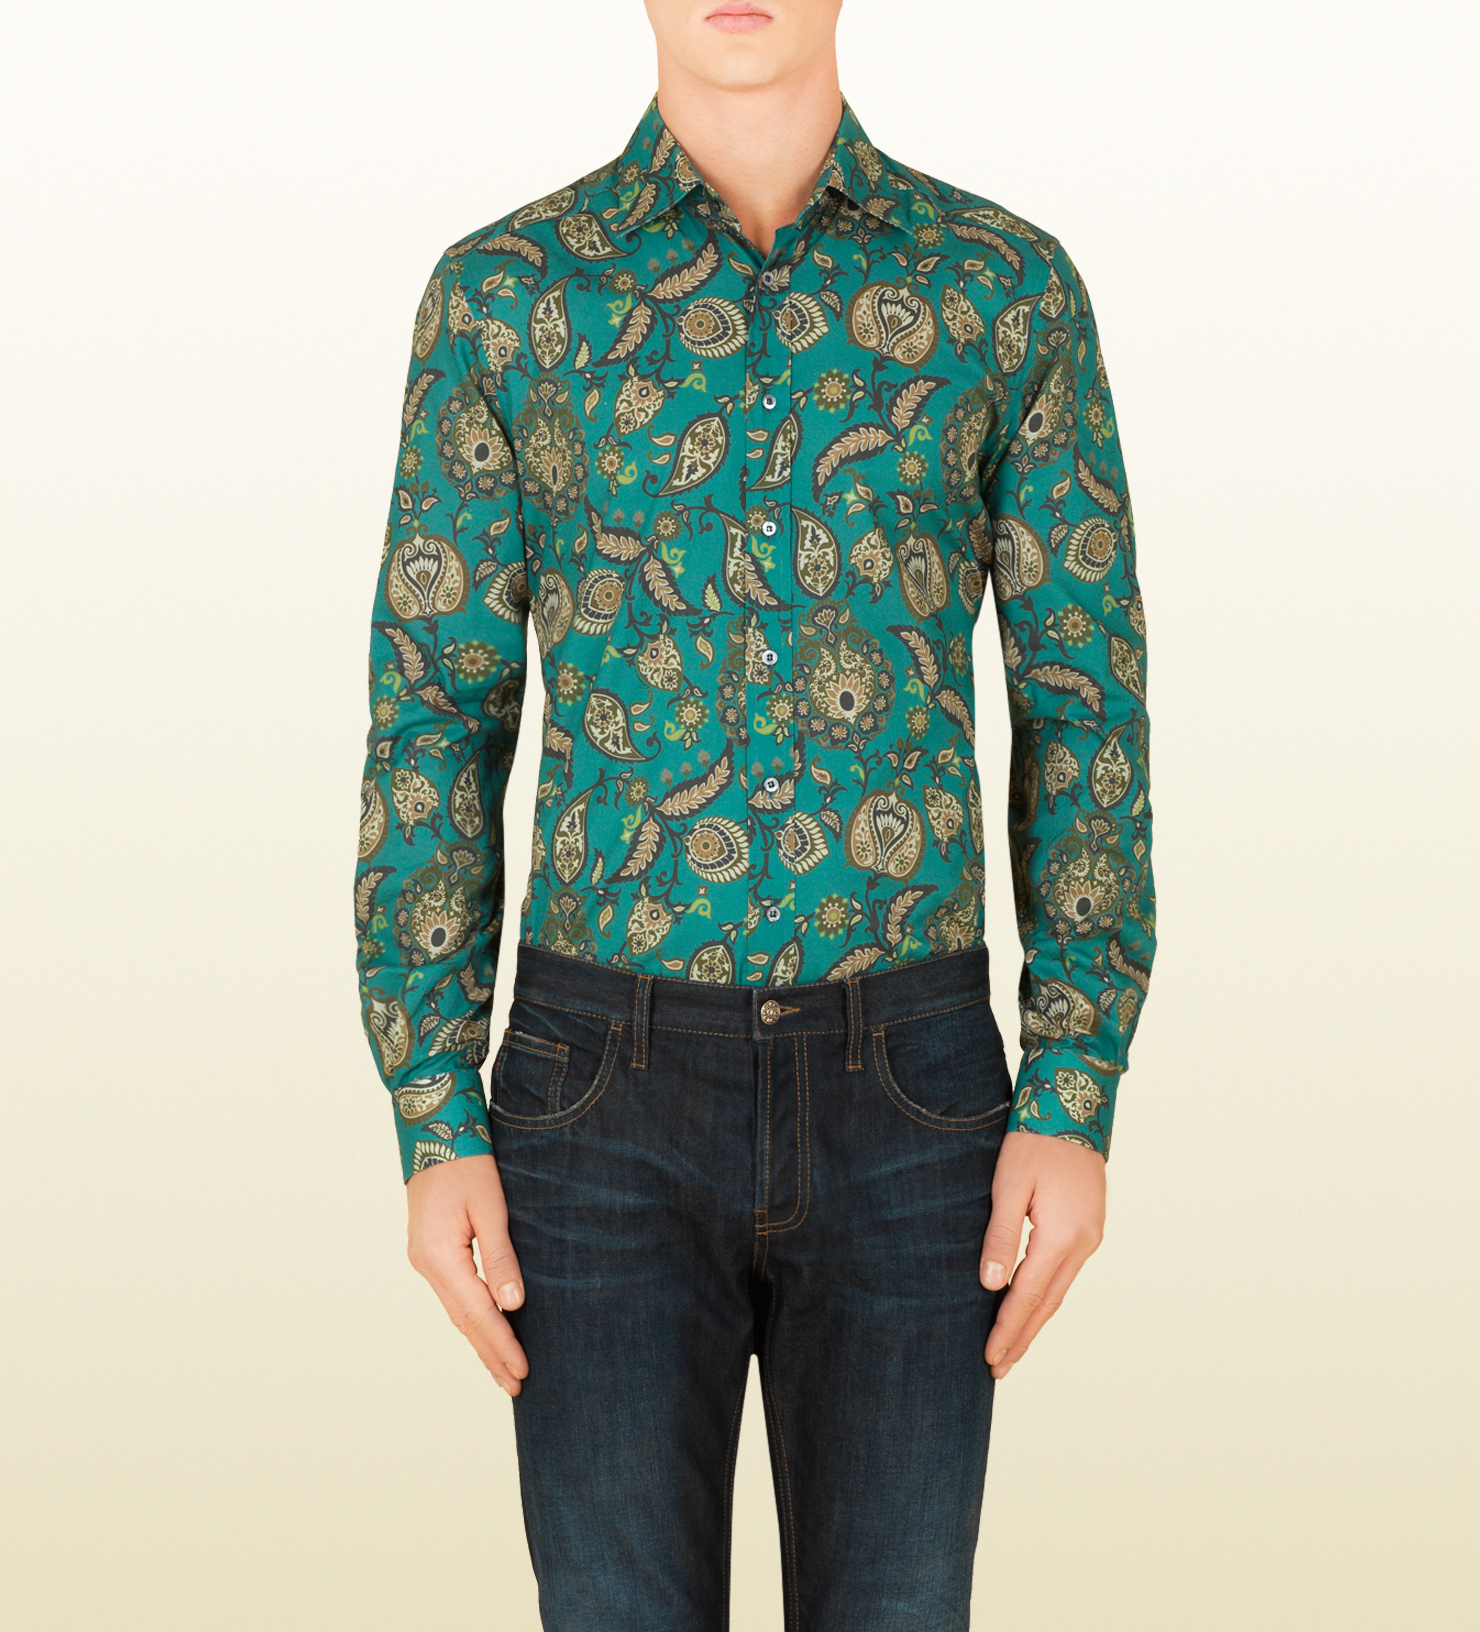 Lyst Gucci Paisley Print Fitted Shirt In Green For Men